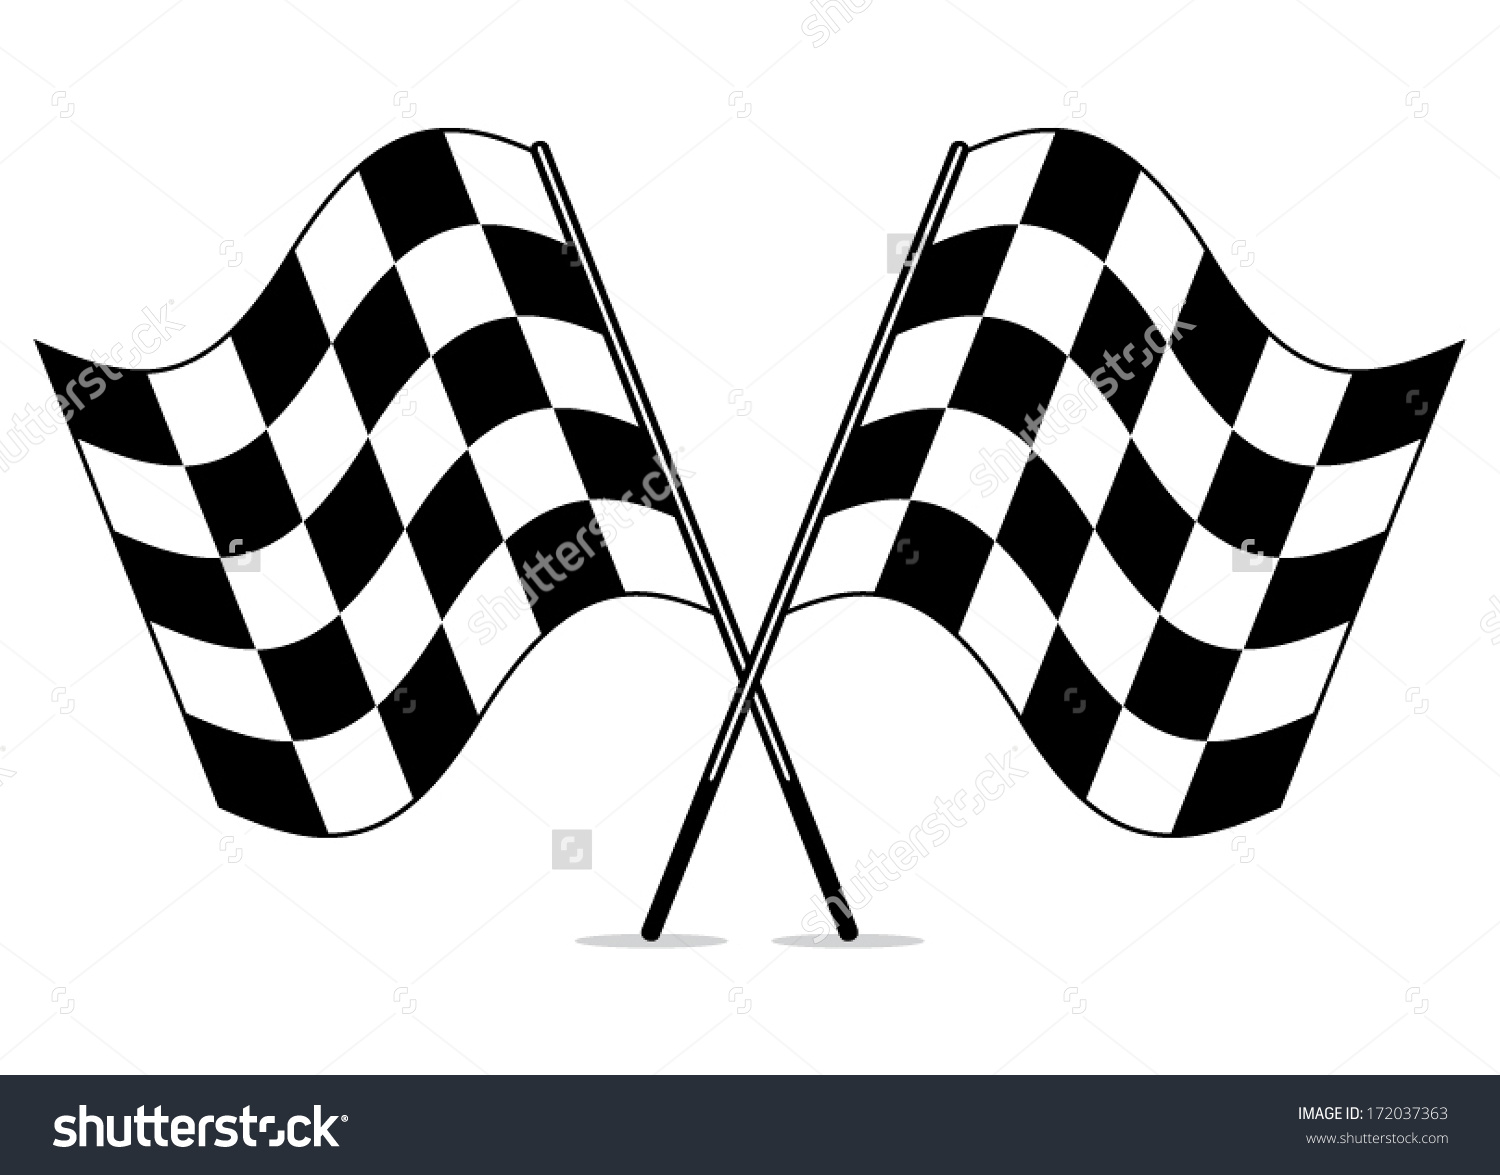 Checkered clipart #3, Download drawings